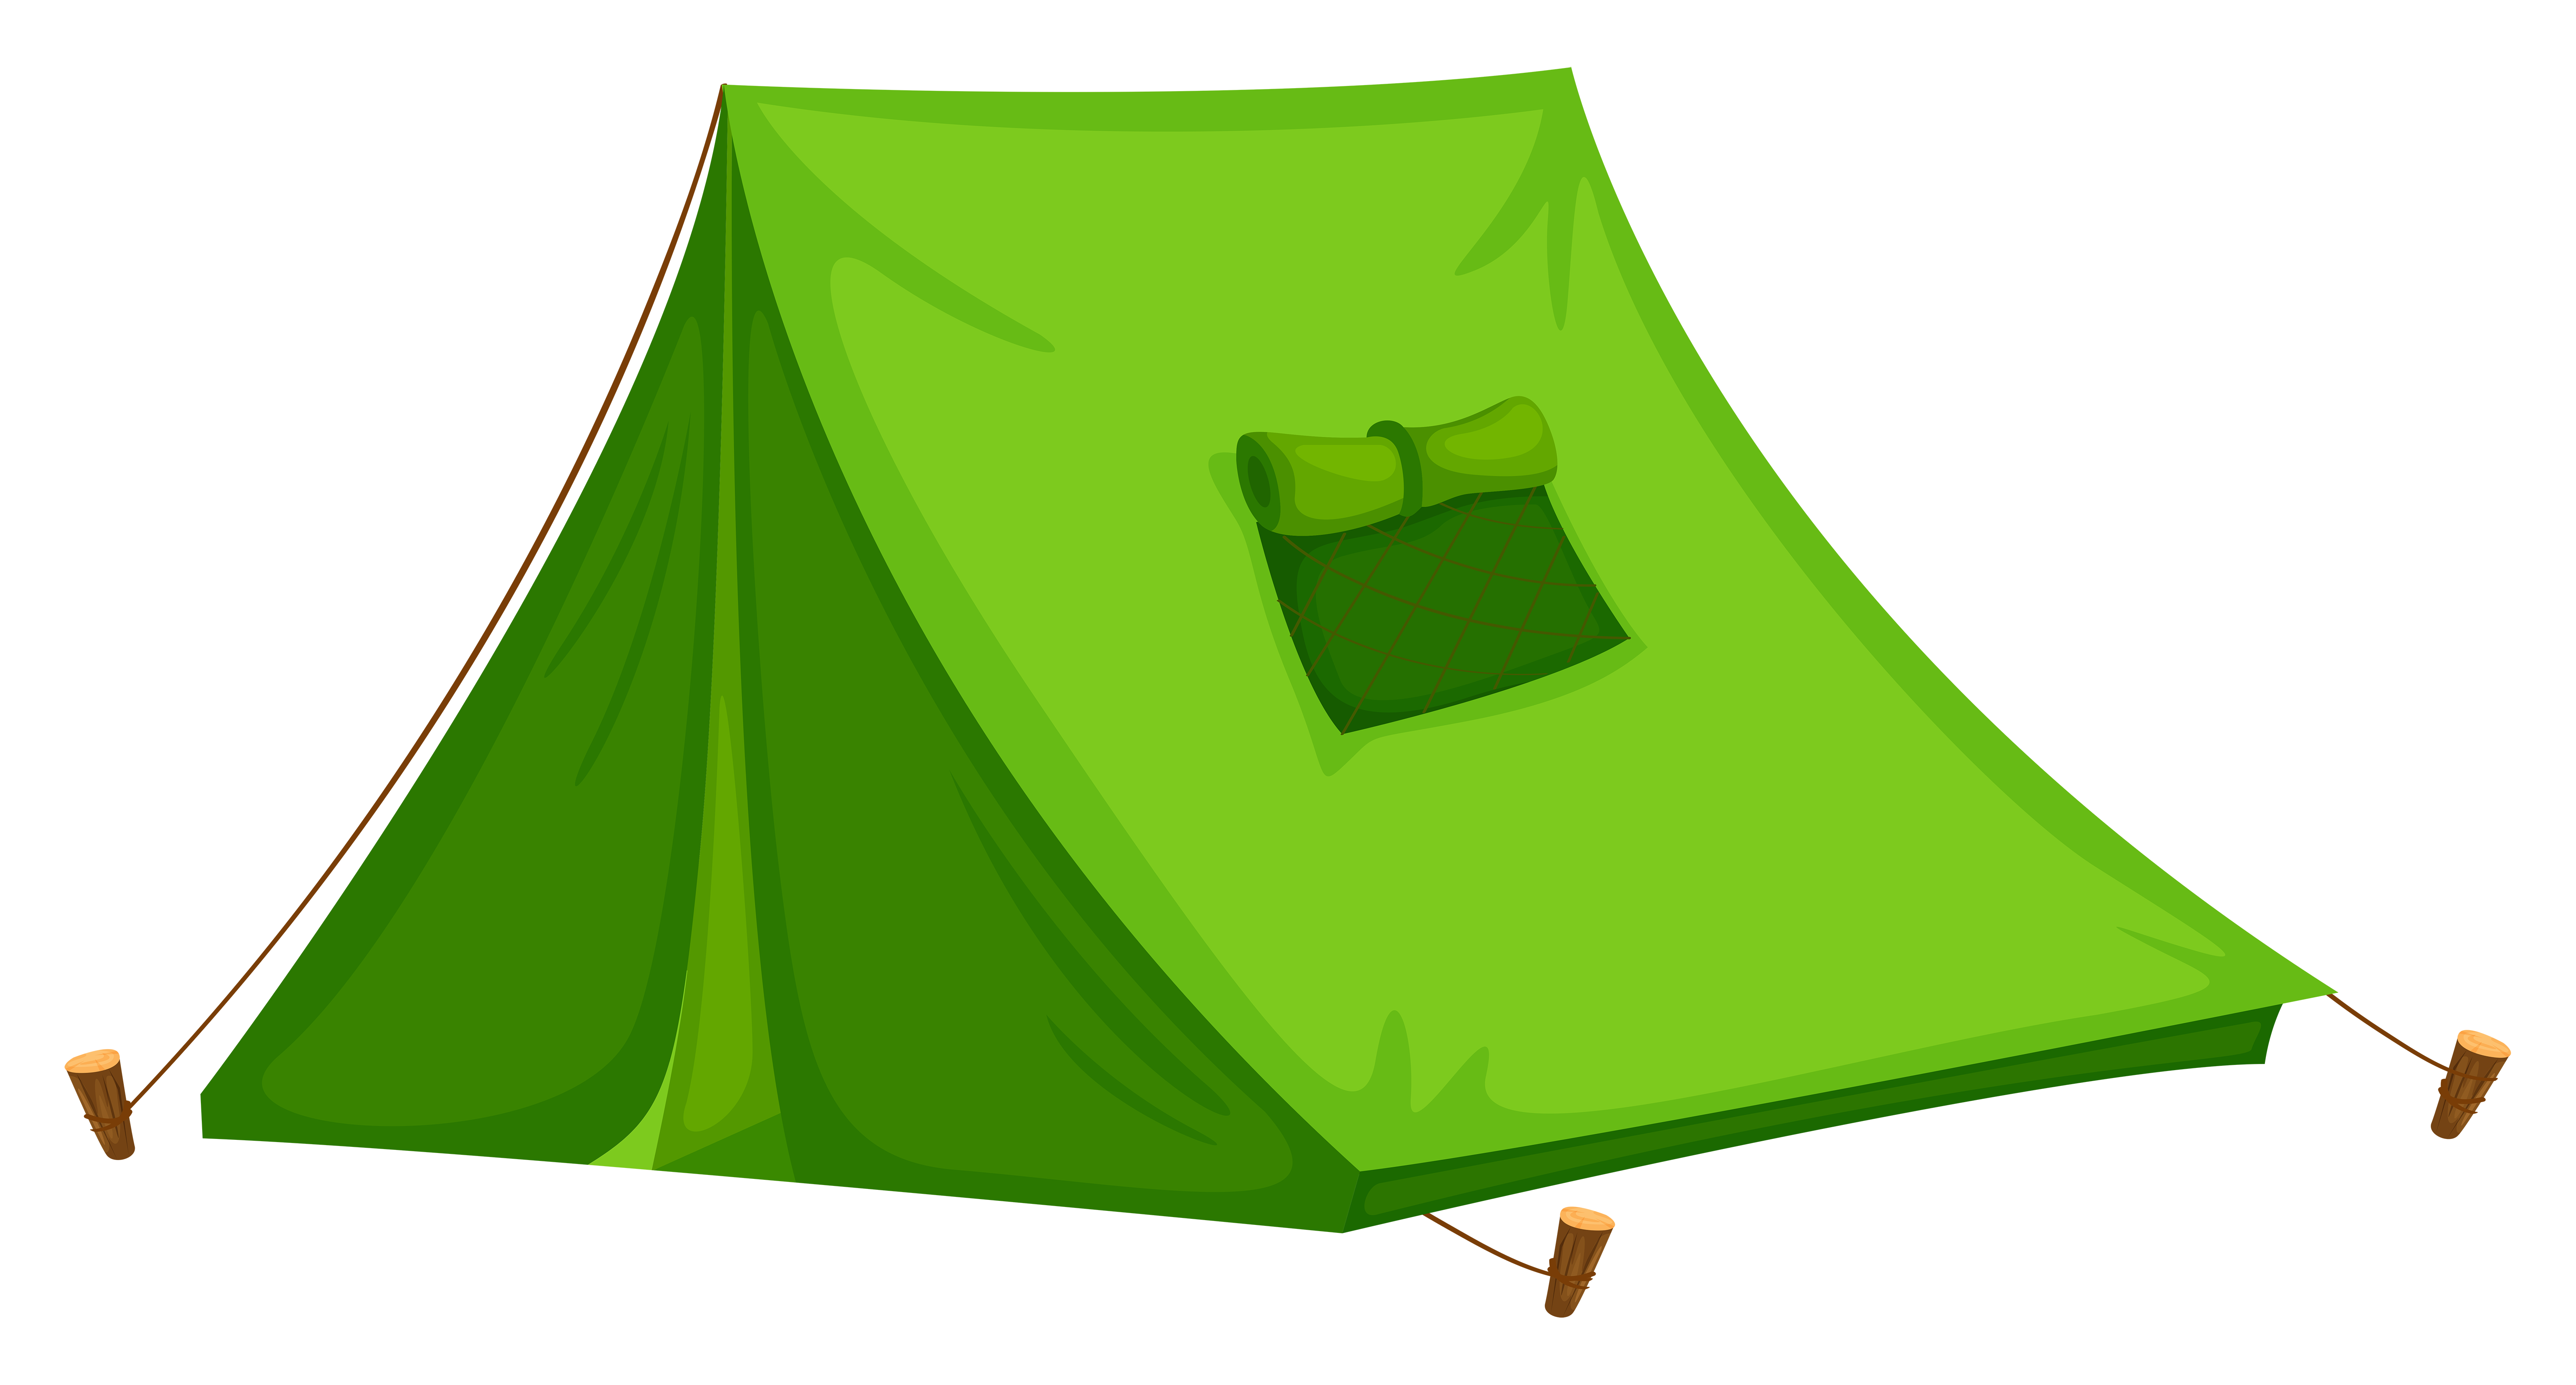 Tent with cross clipart image download 28+ Collection of Camping Tent Clipart Png | High quality, free ... image download